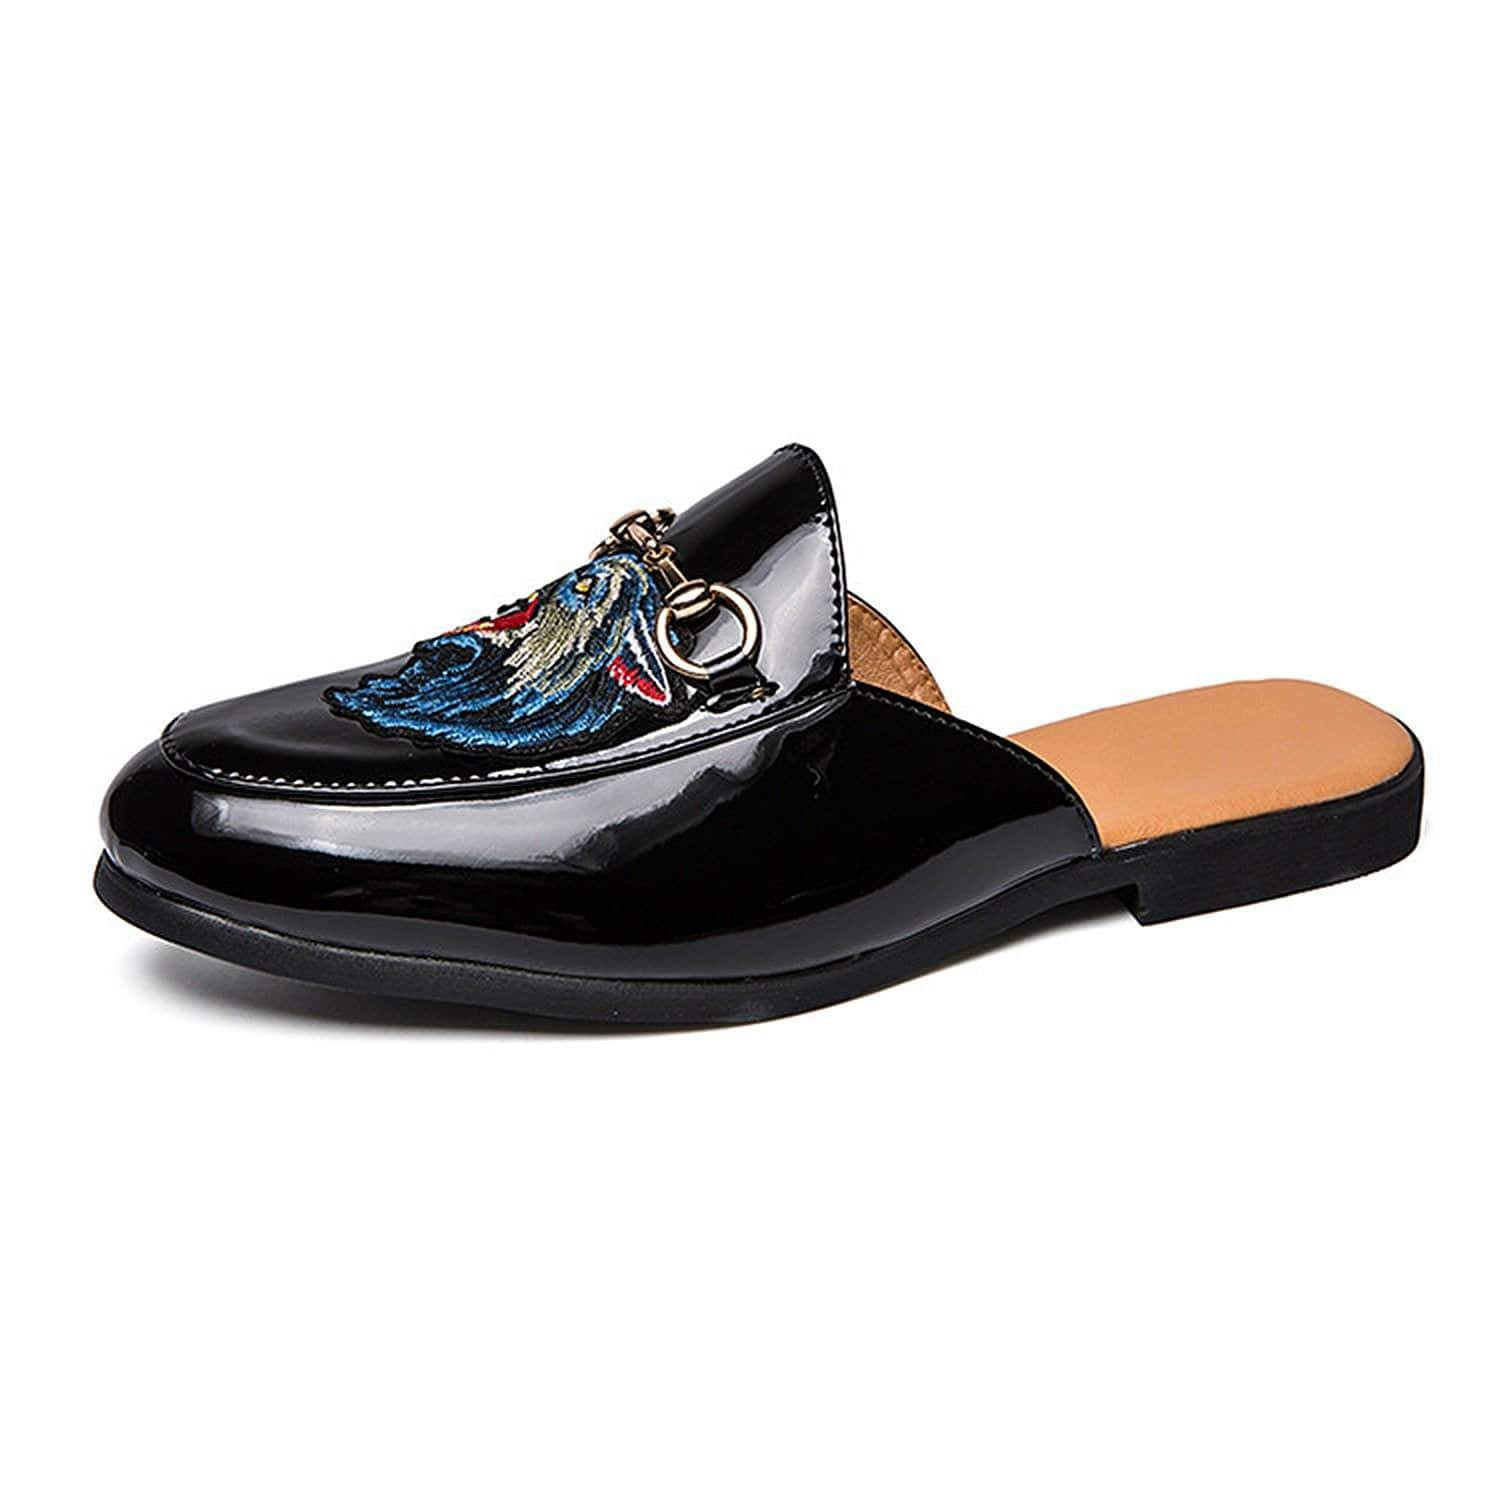 Men's Backless Slip On Buckle Mules